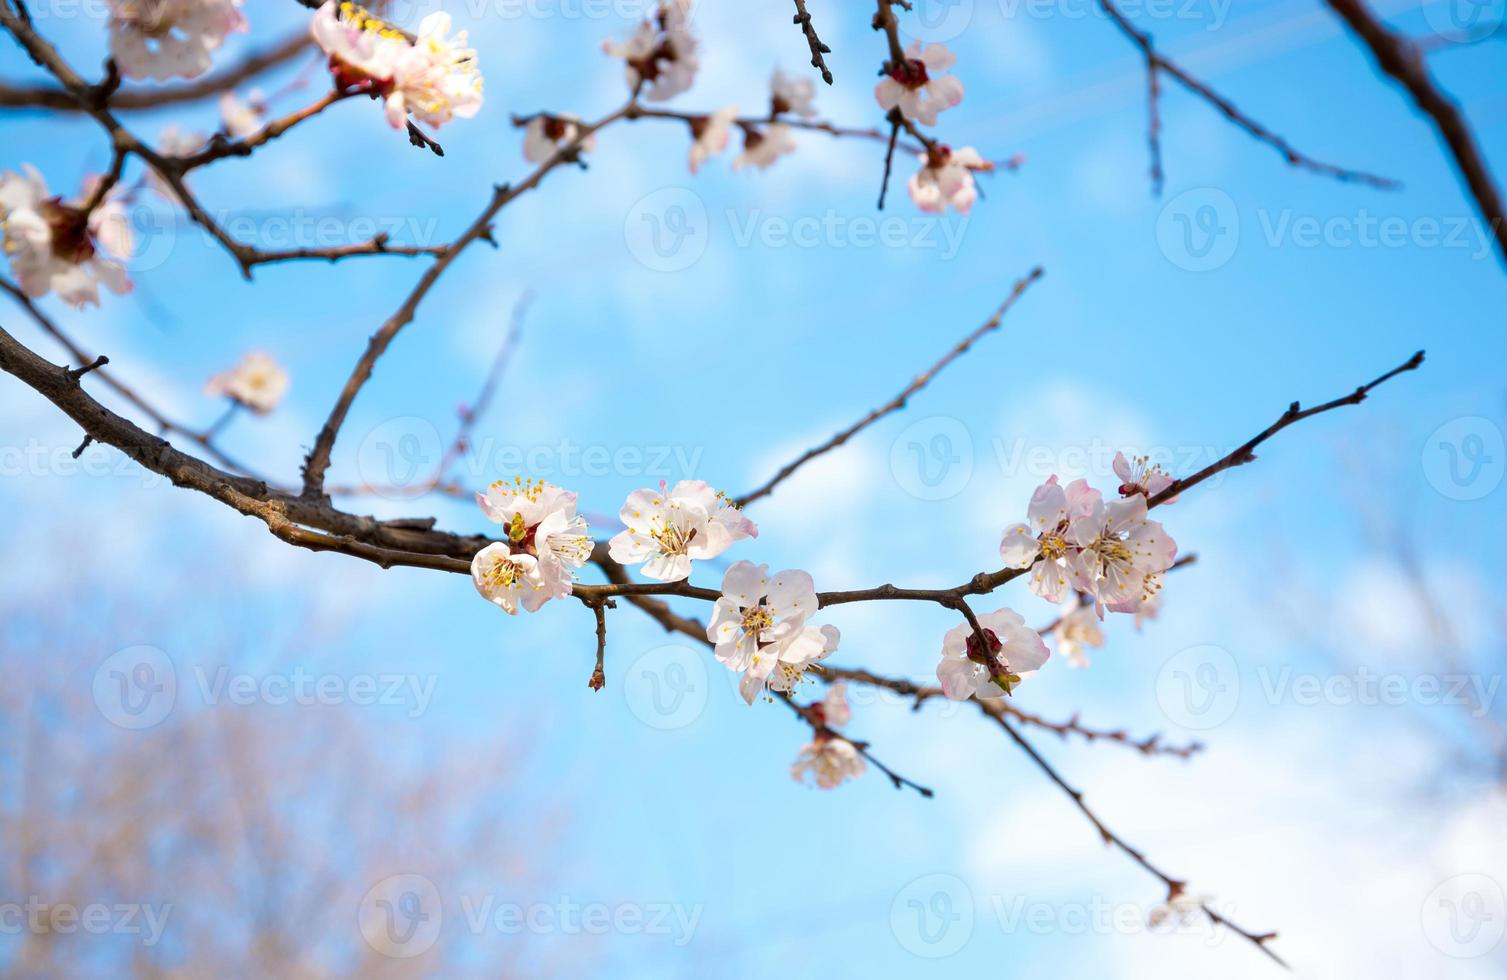 Flowering branch of apricot photo